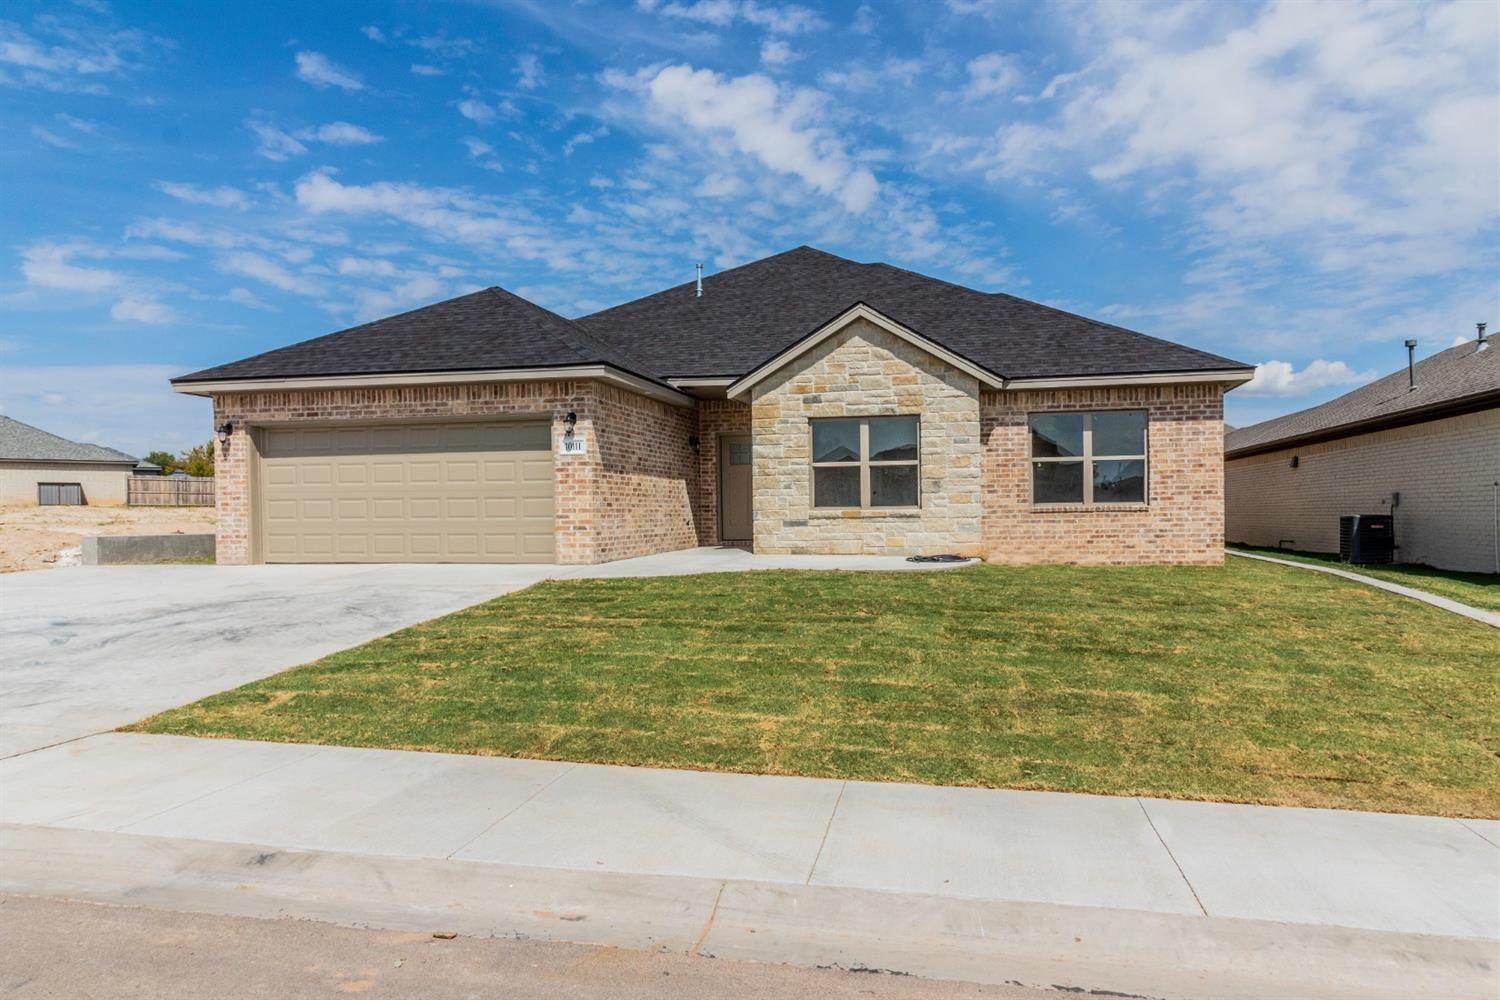 10111 Ave W, Lubbock in Lubbock County, TX 79423 Home for Sale